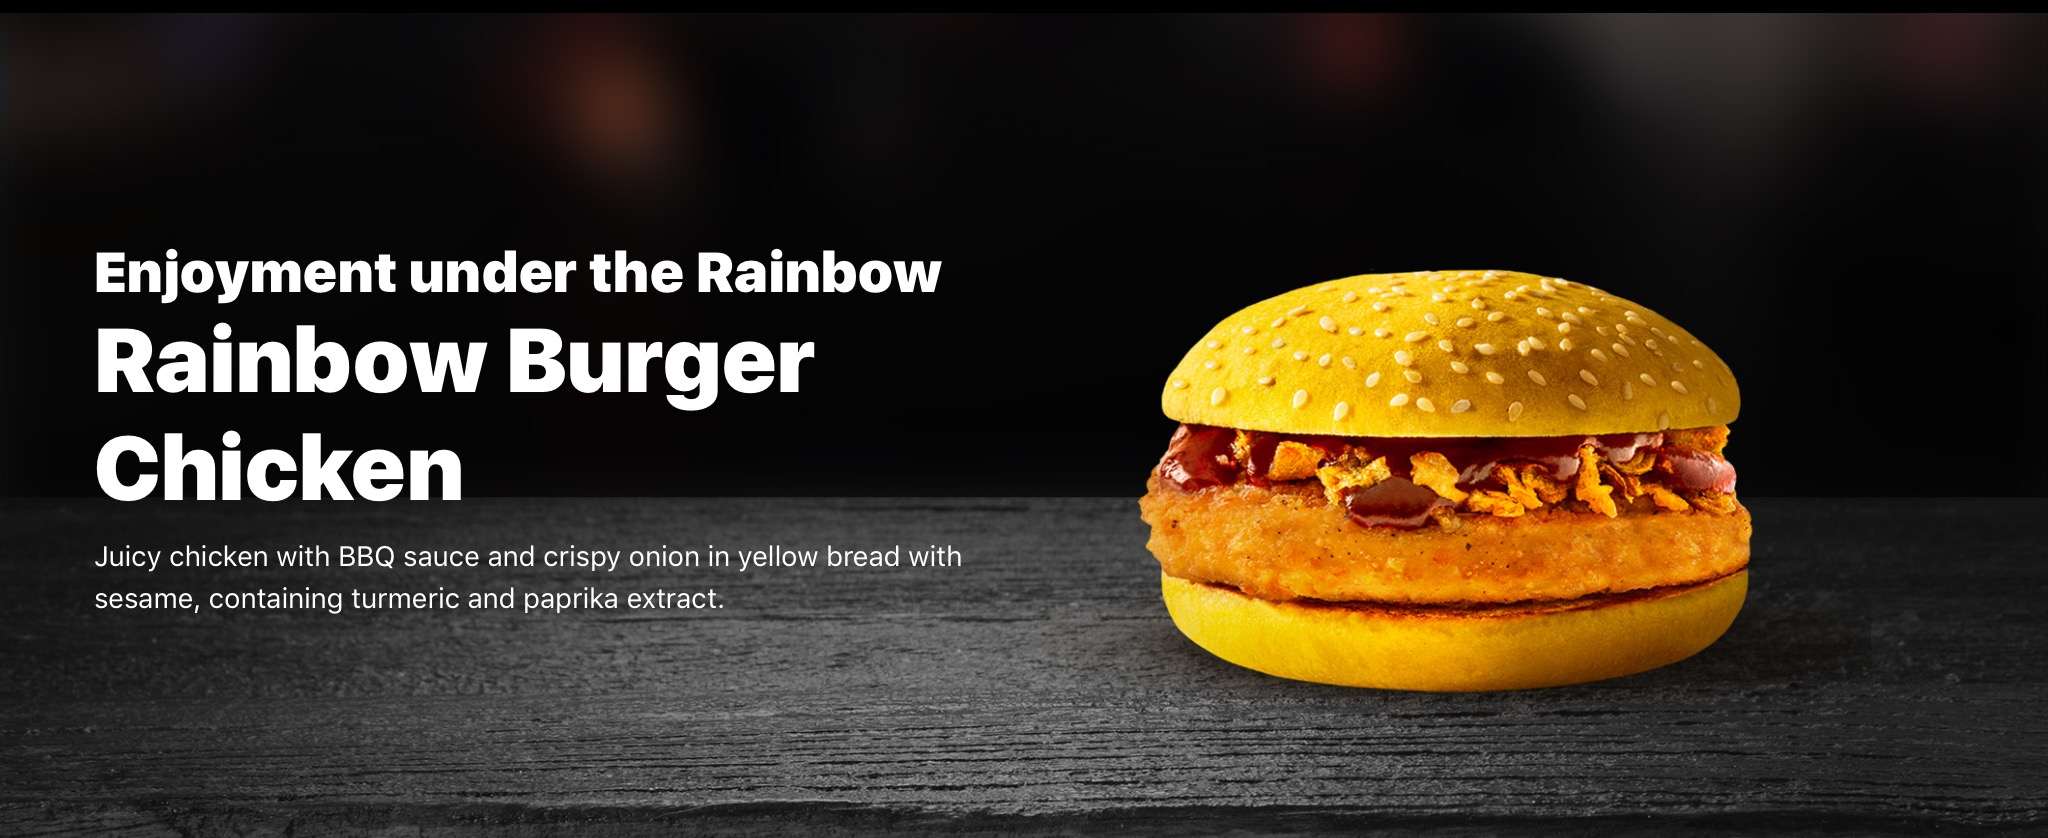 McDonald's Rainbow Burger Chicken